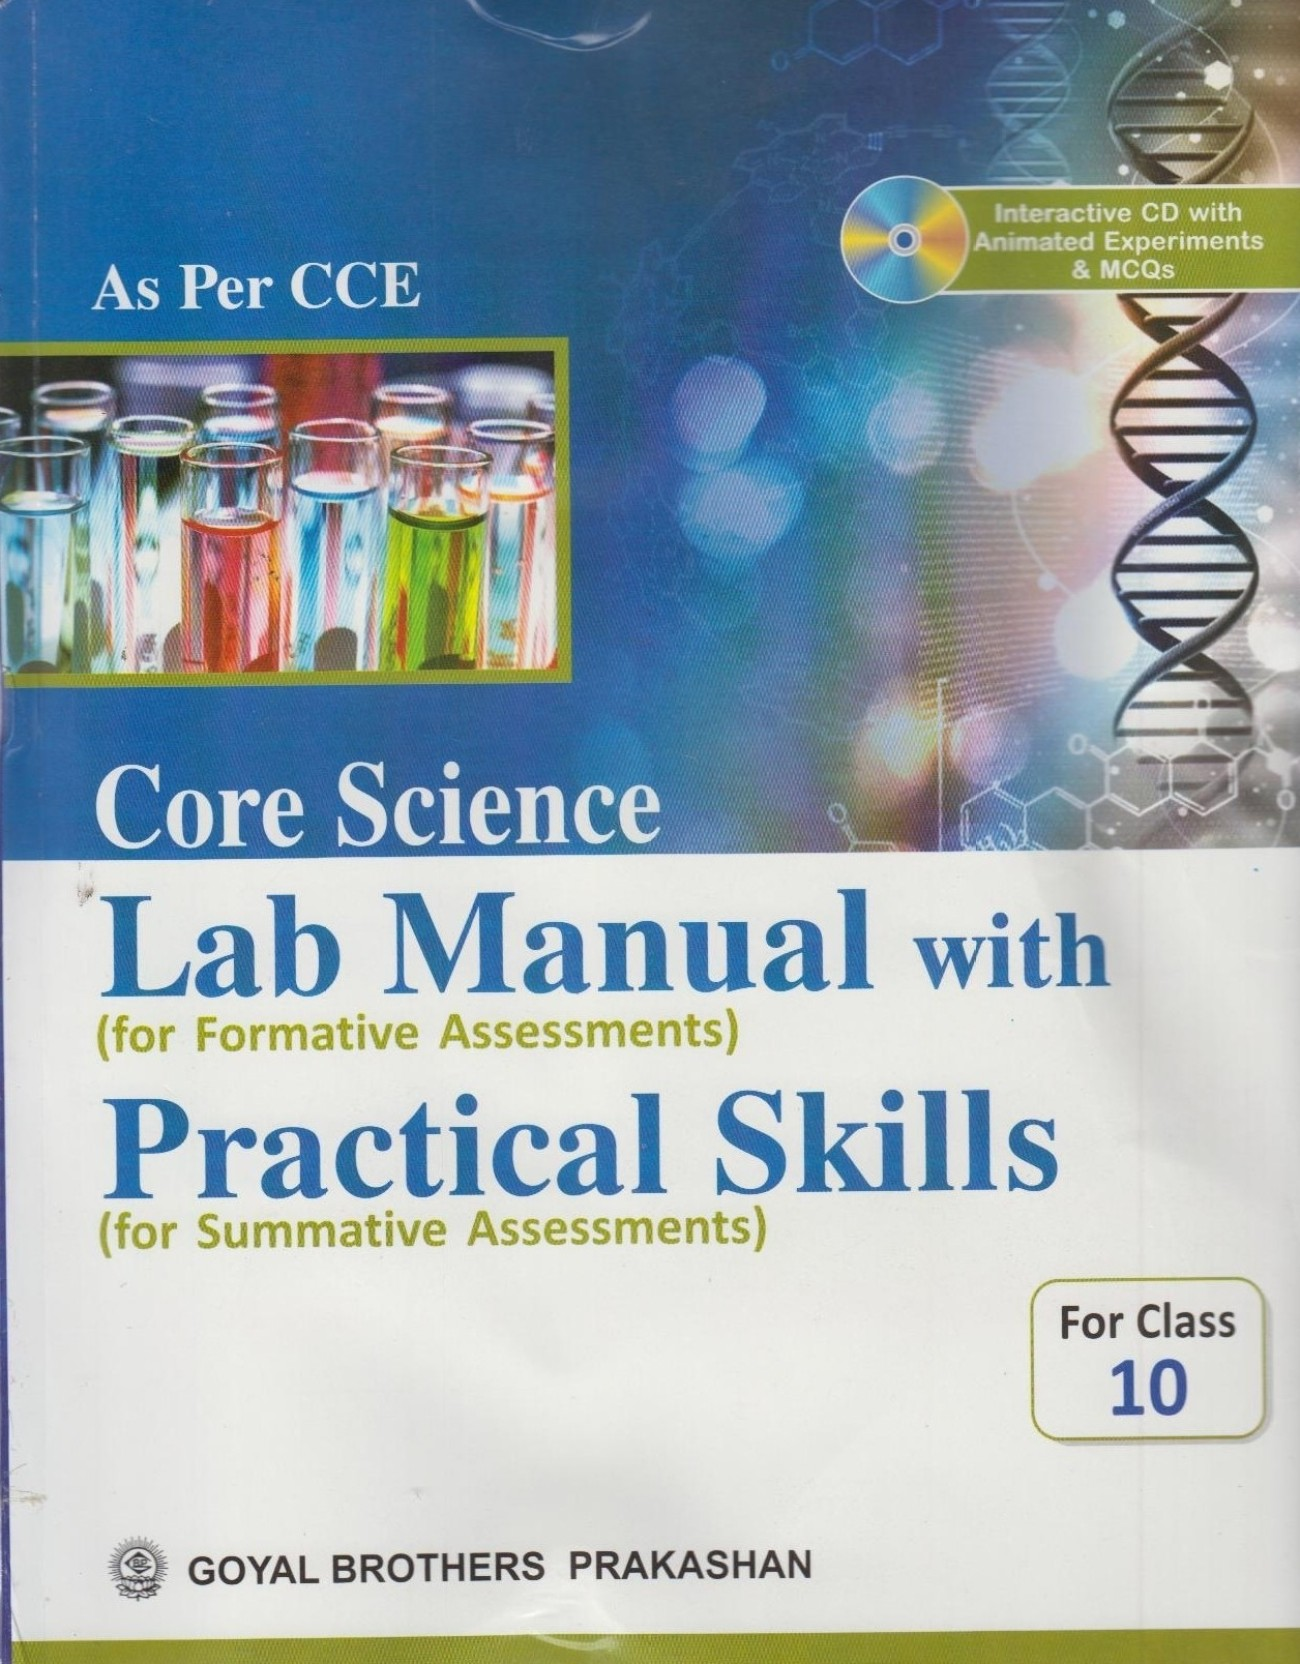 Core Science Lab Manual With Practical Skills For Class 10 (With CD). Share